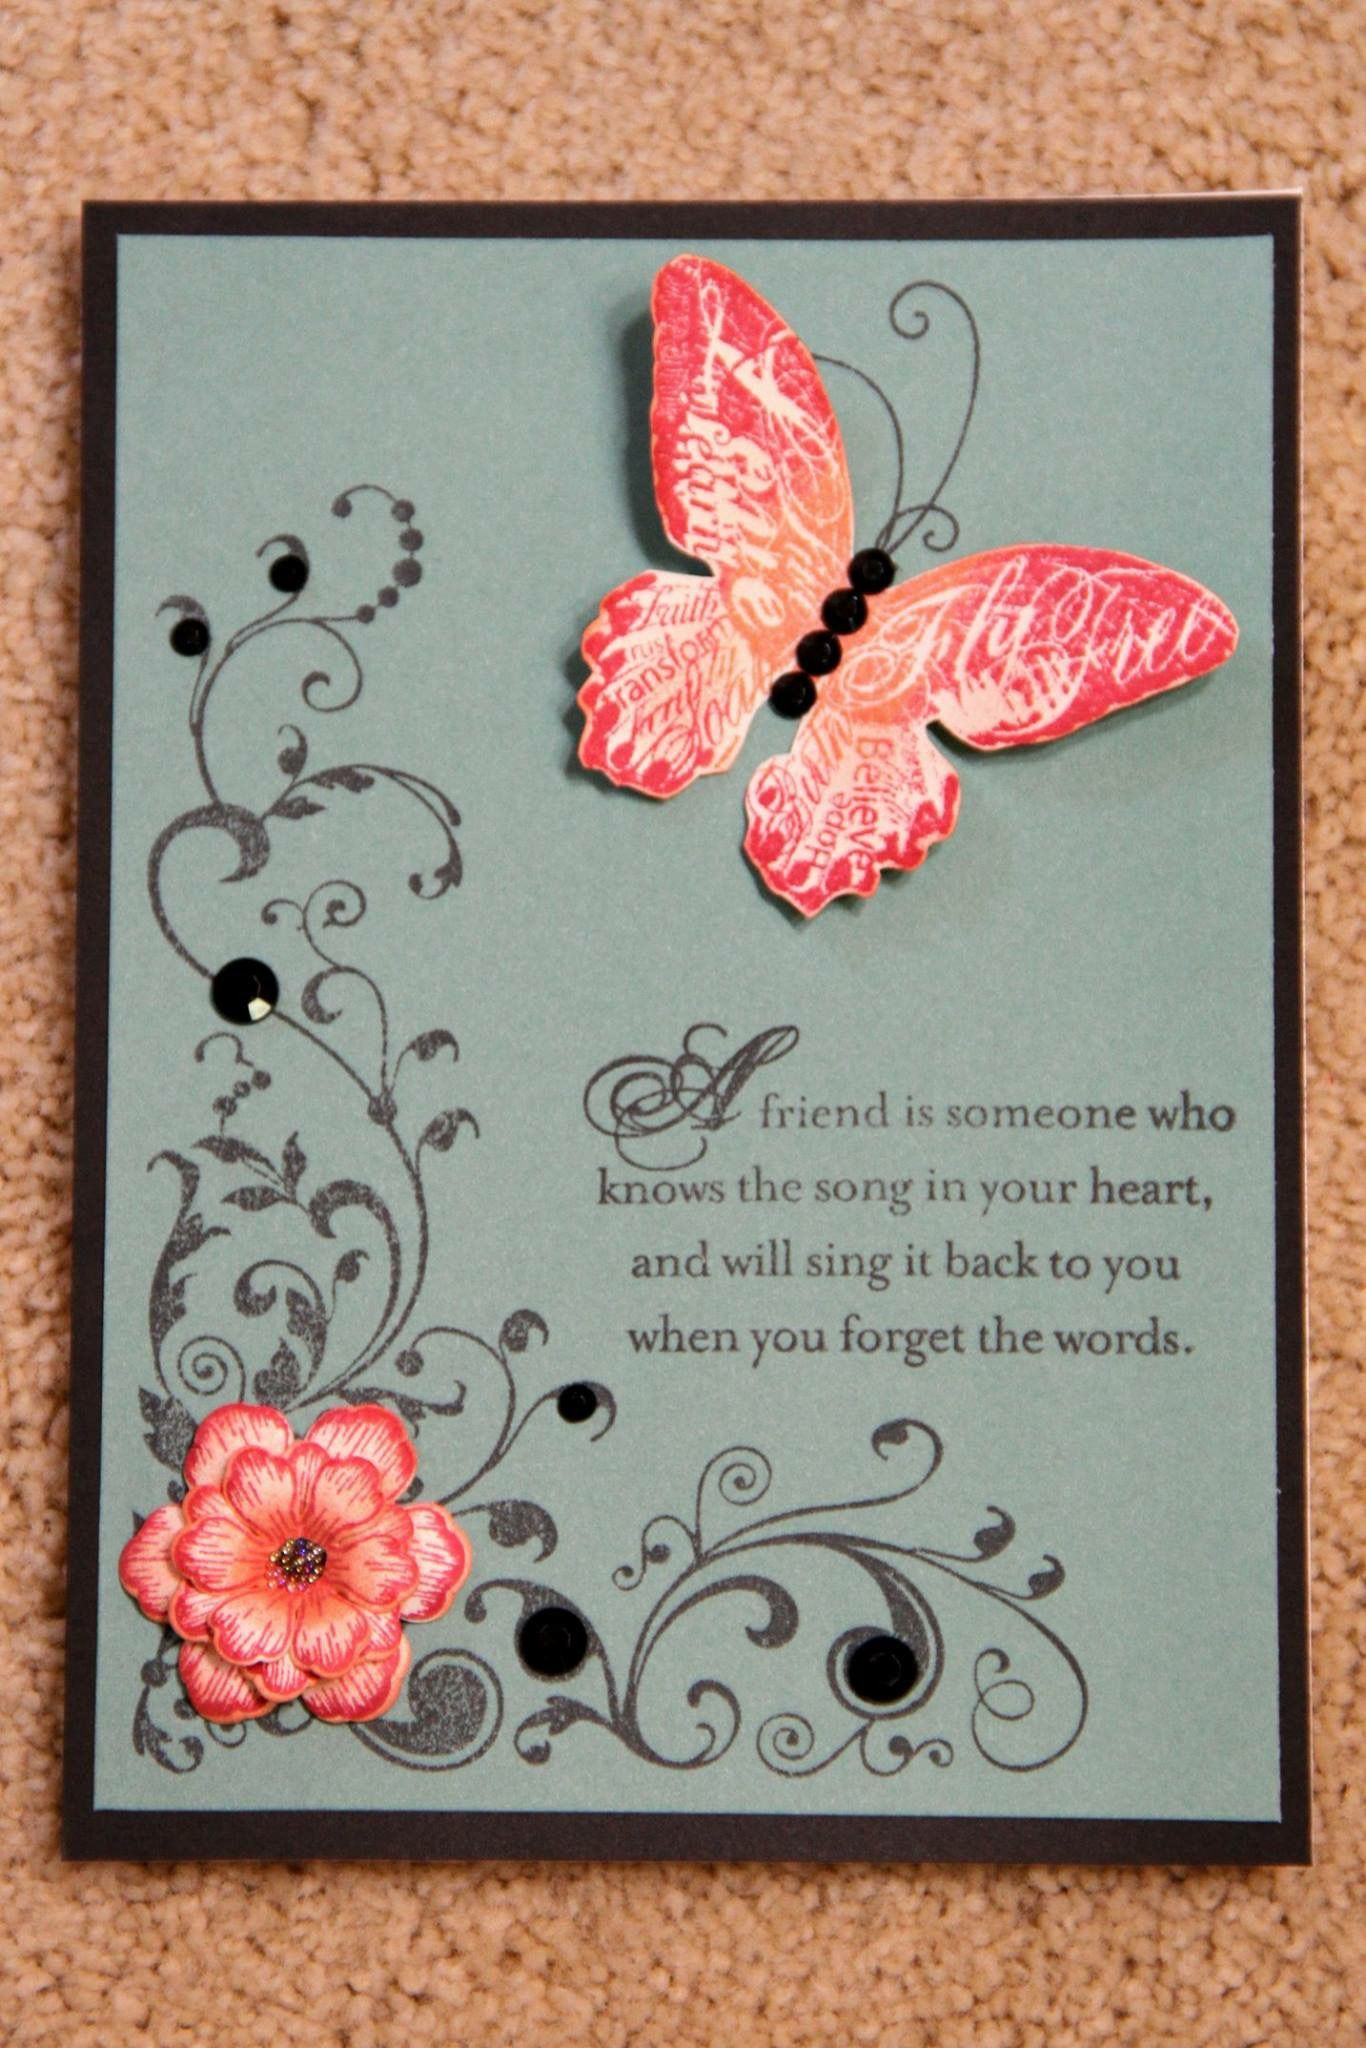 Pin by tracy banks on card ideas pinterest card ideas